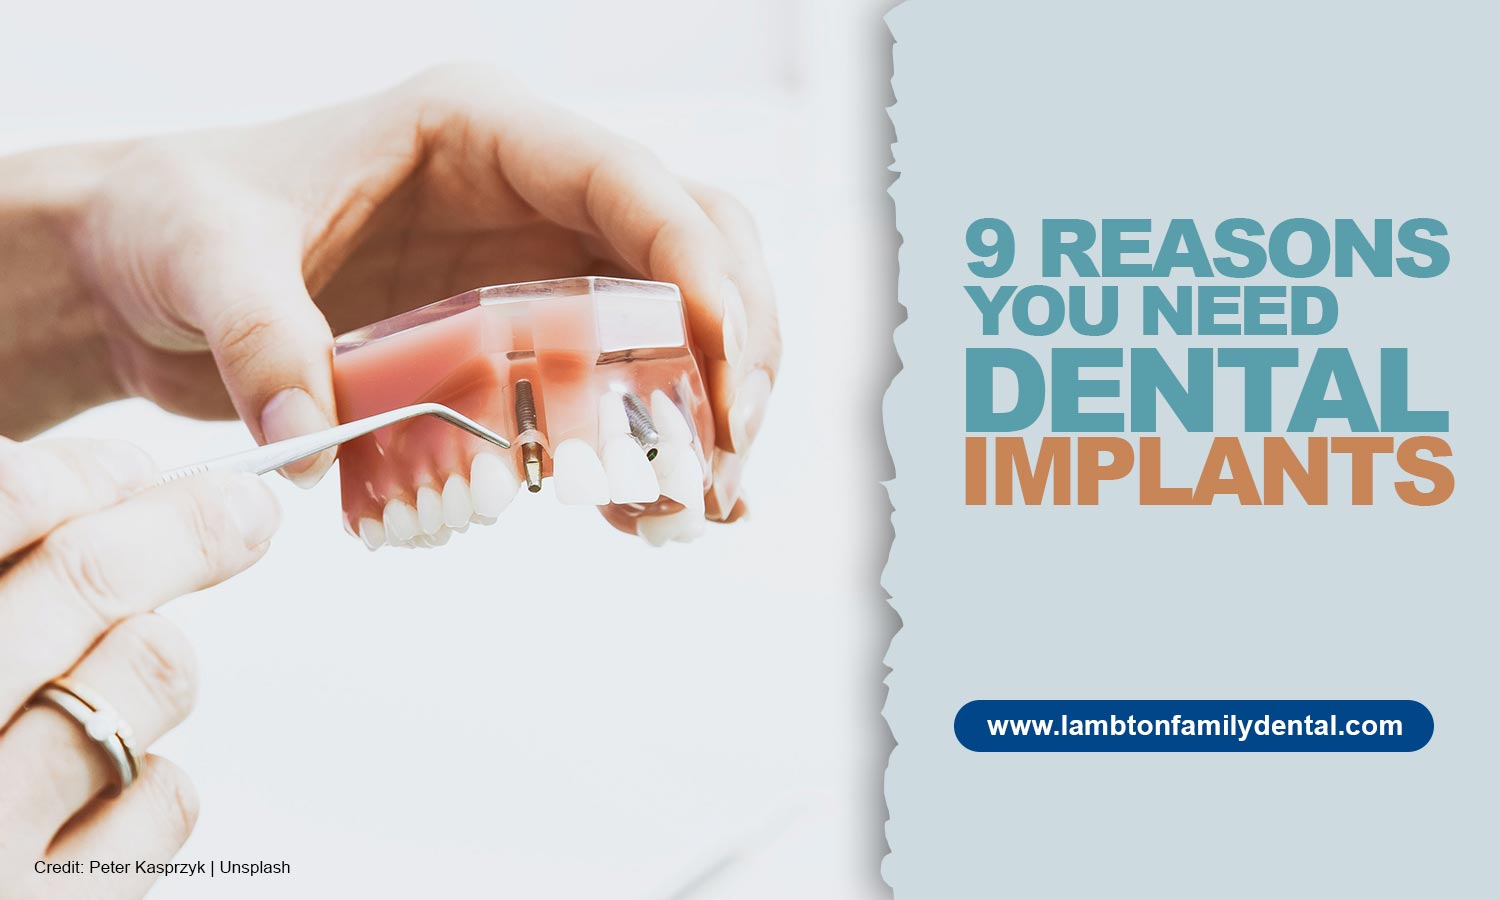 9 Reasons You Need Dental Implants